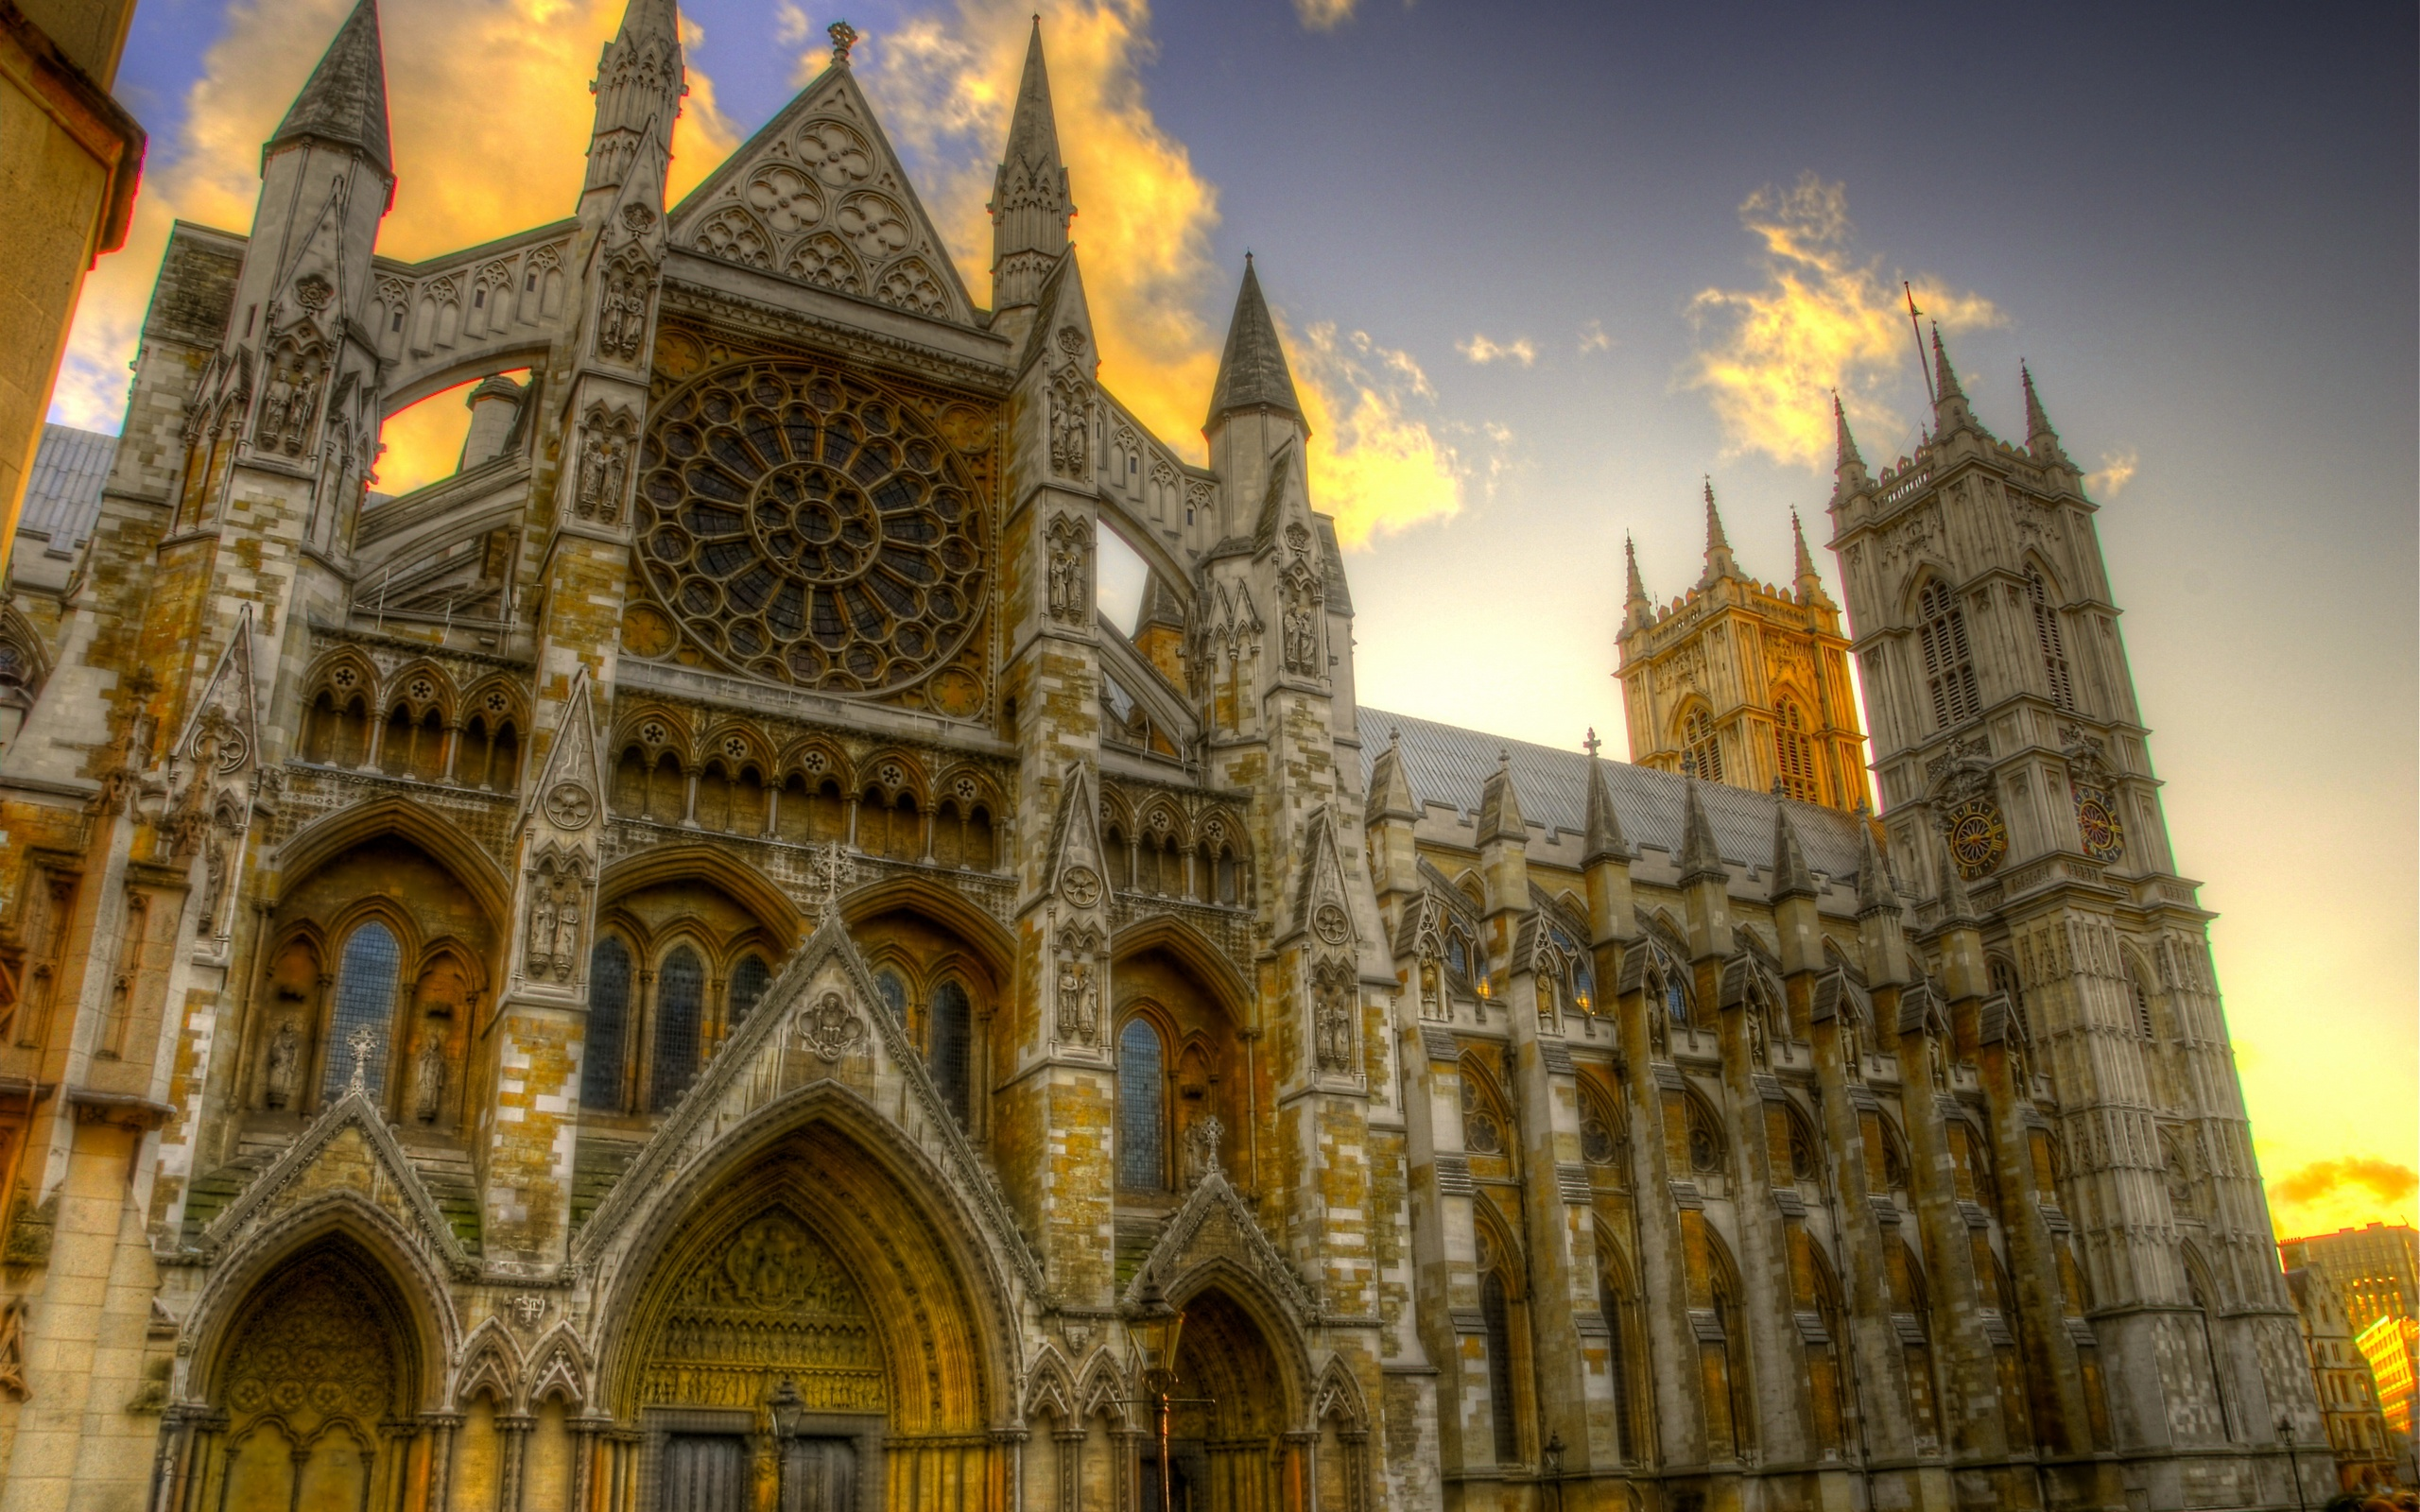 Westminster Abbey HD Wallpaper Background Image 2560x1600 ID 2560x1600